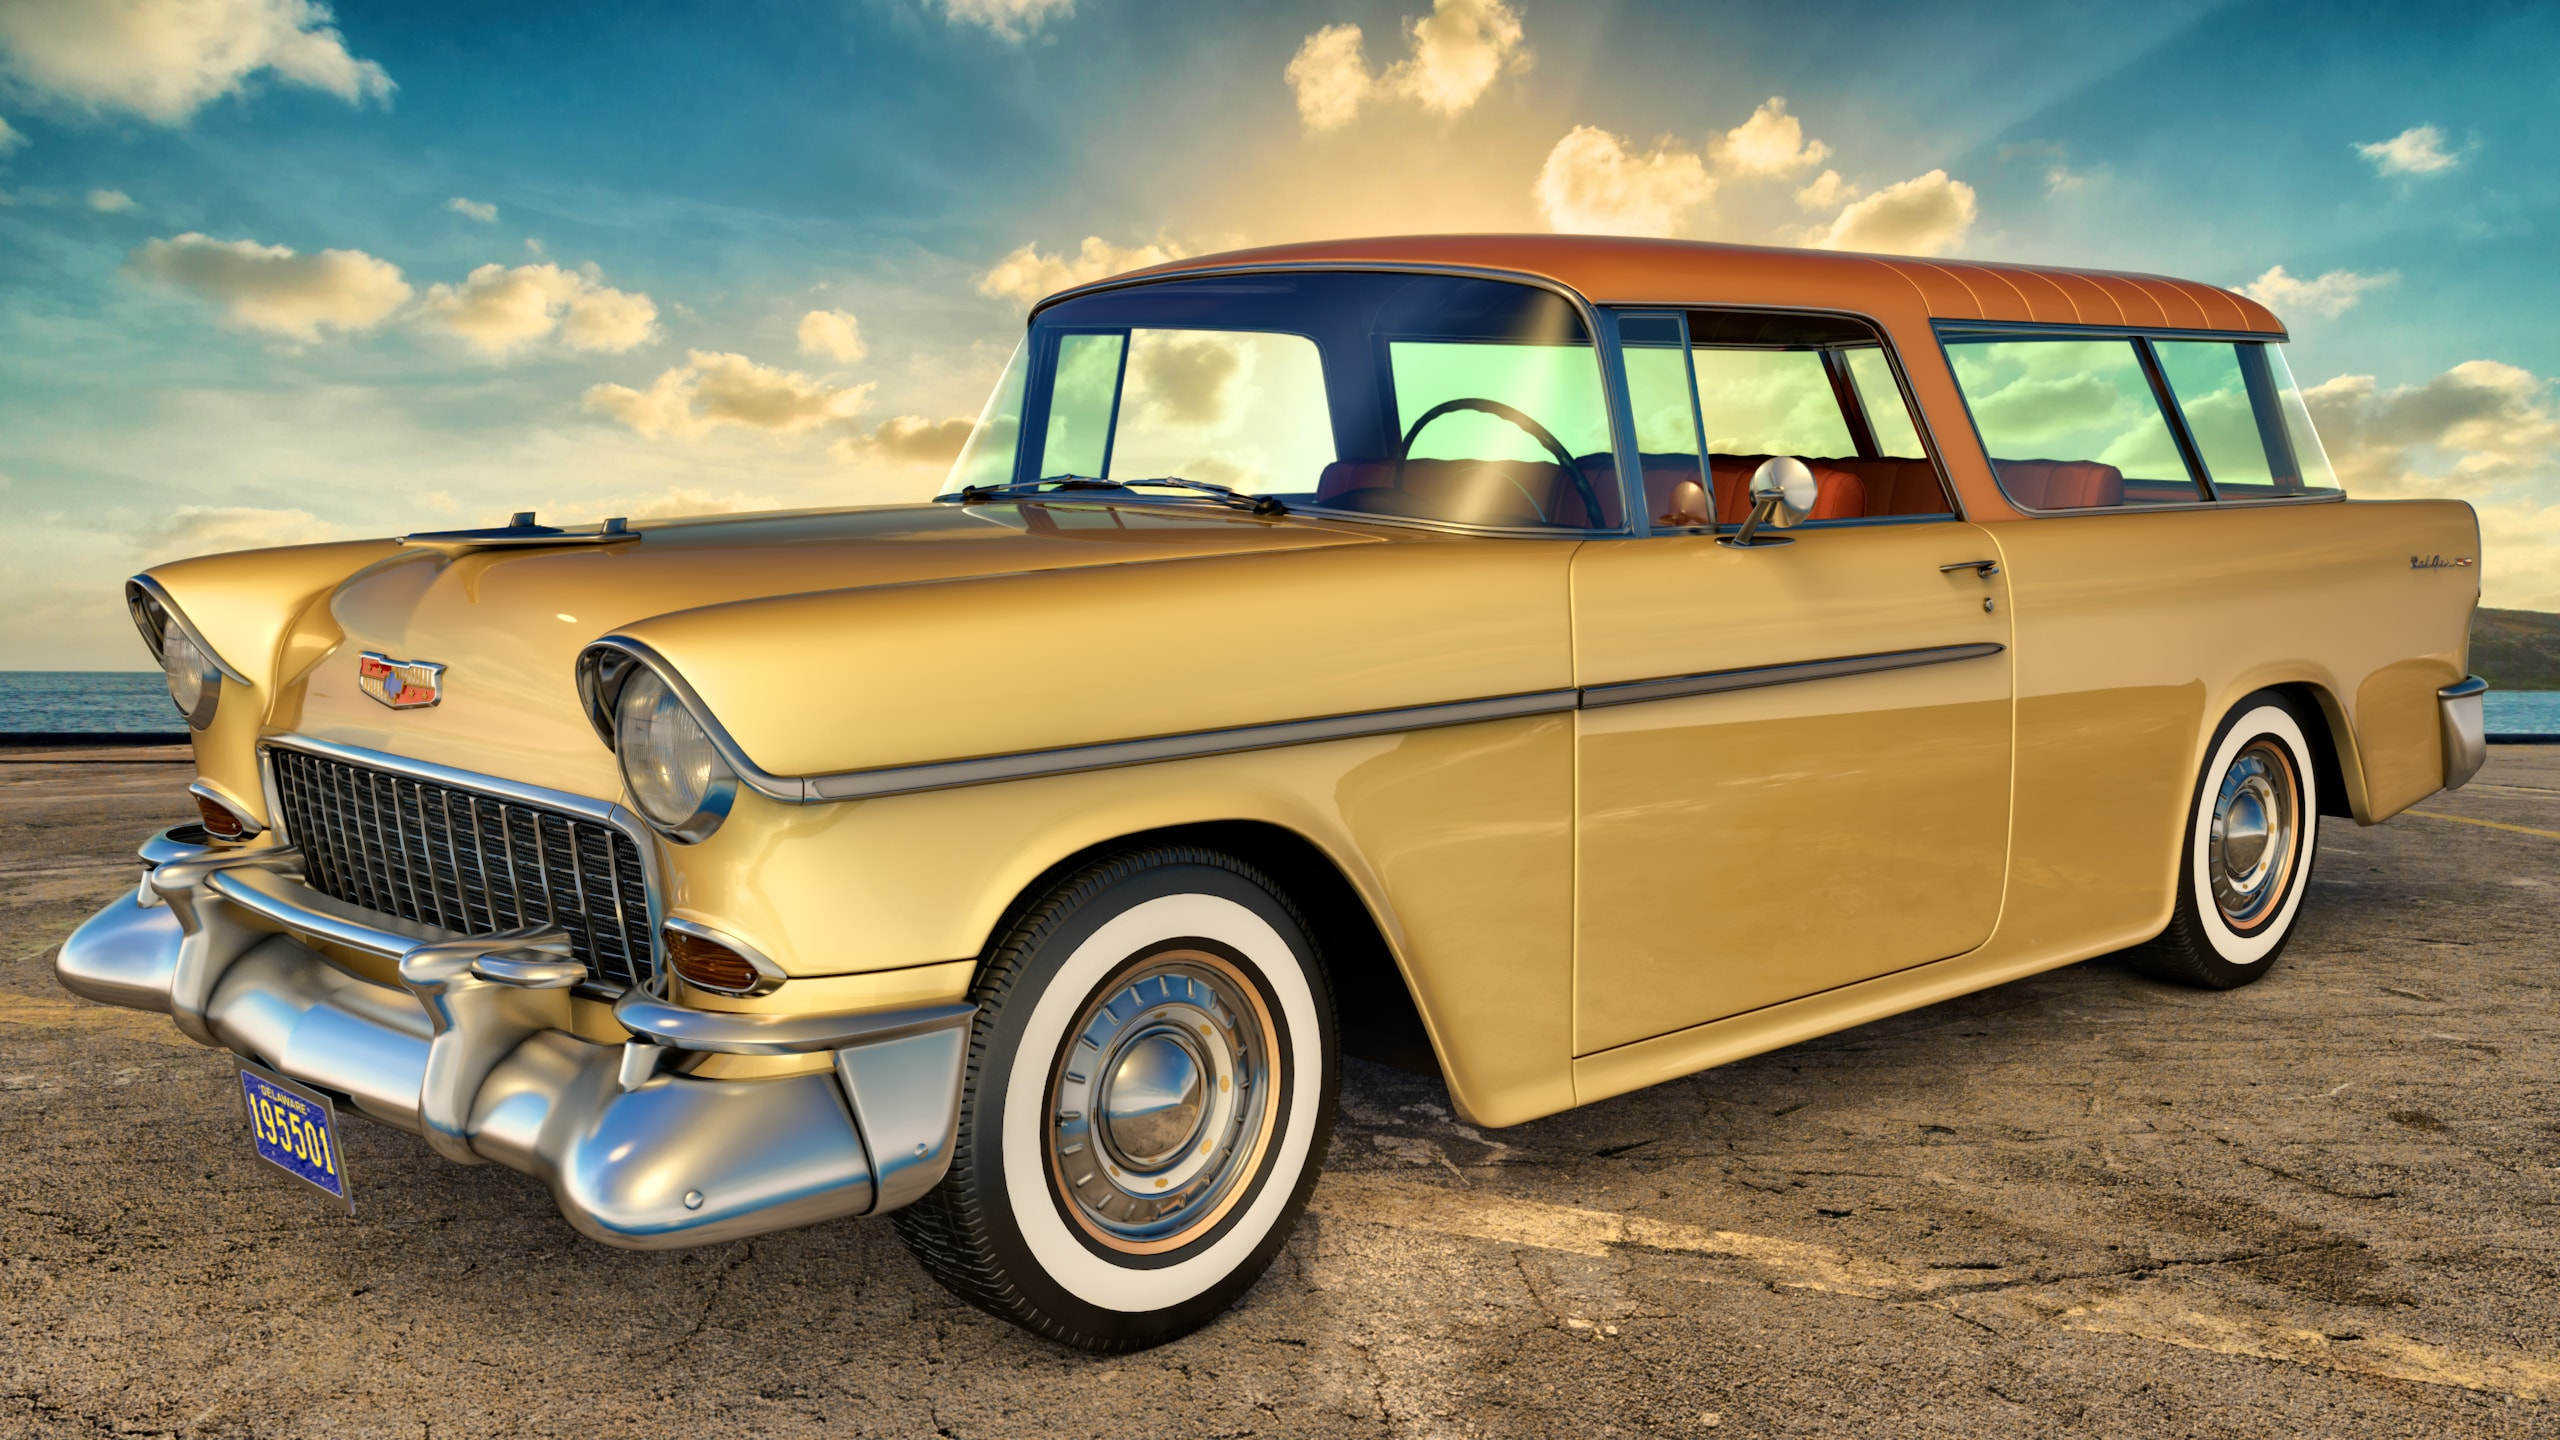 2560x1440 - Chevrolet Nomad Wallpapers 27